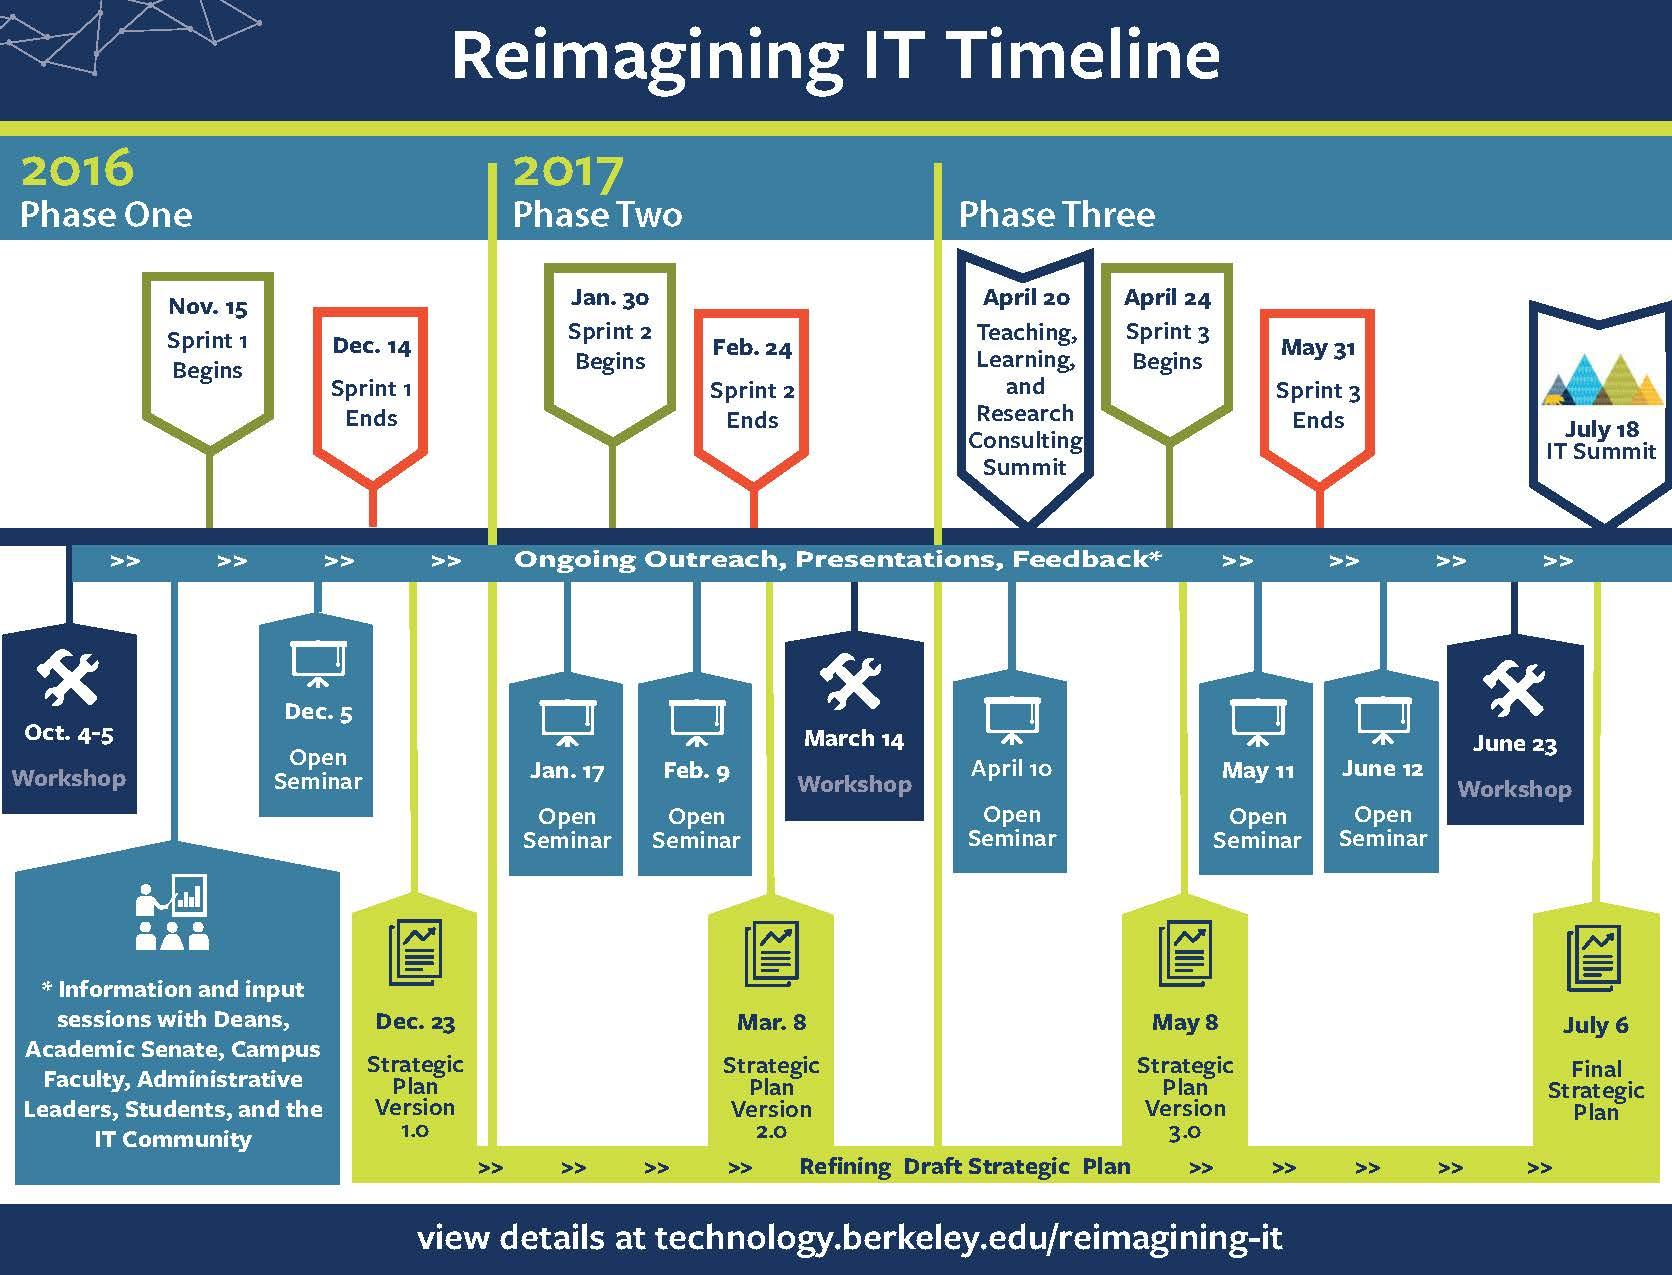 Reimagining IT Strategic Plan timeline graphic